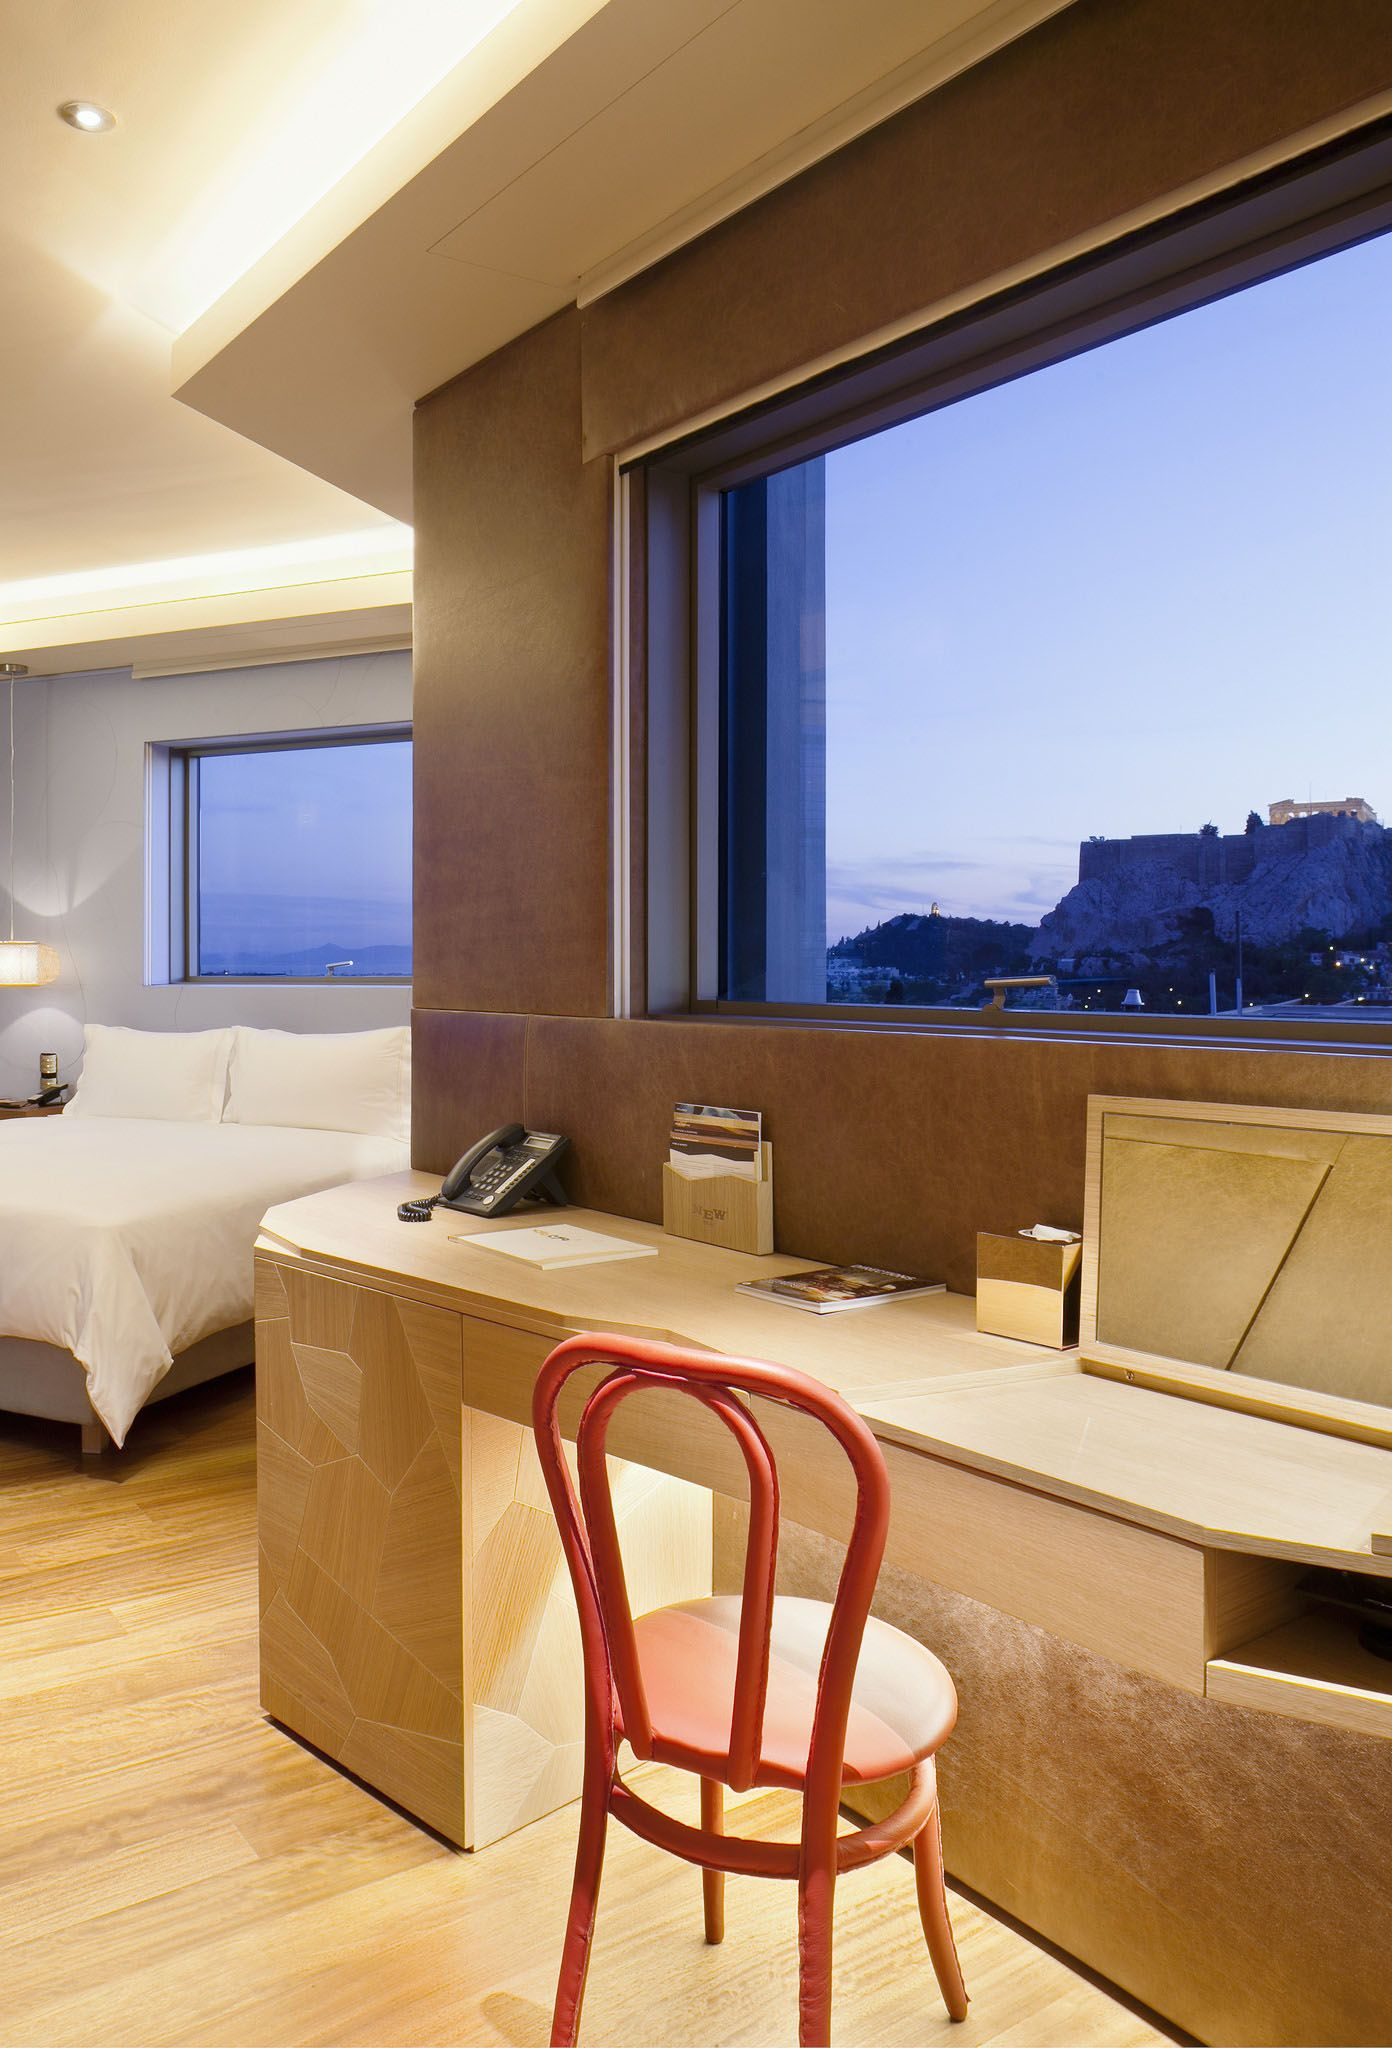 Penthouse suite at the new hotel athens greece www mediteranique com hotels greece athens new hotel